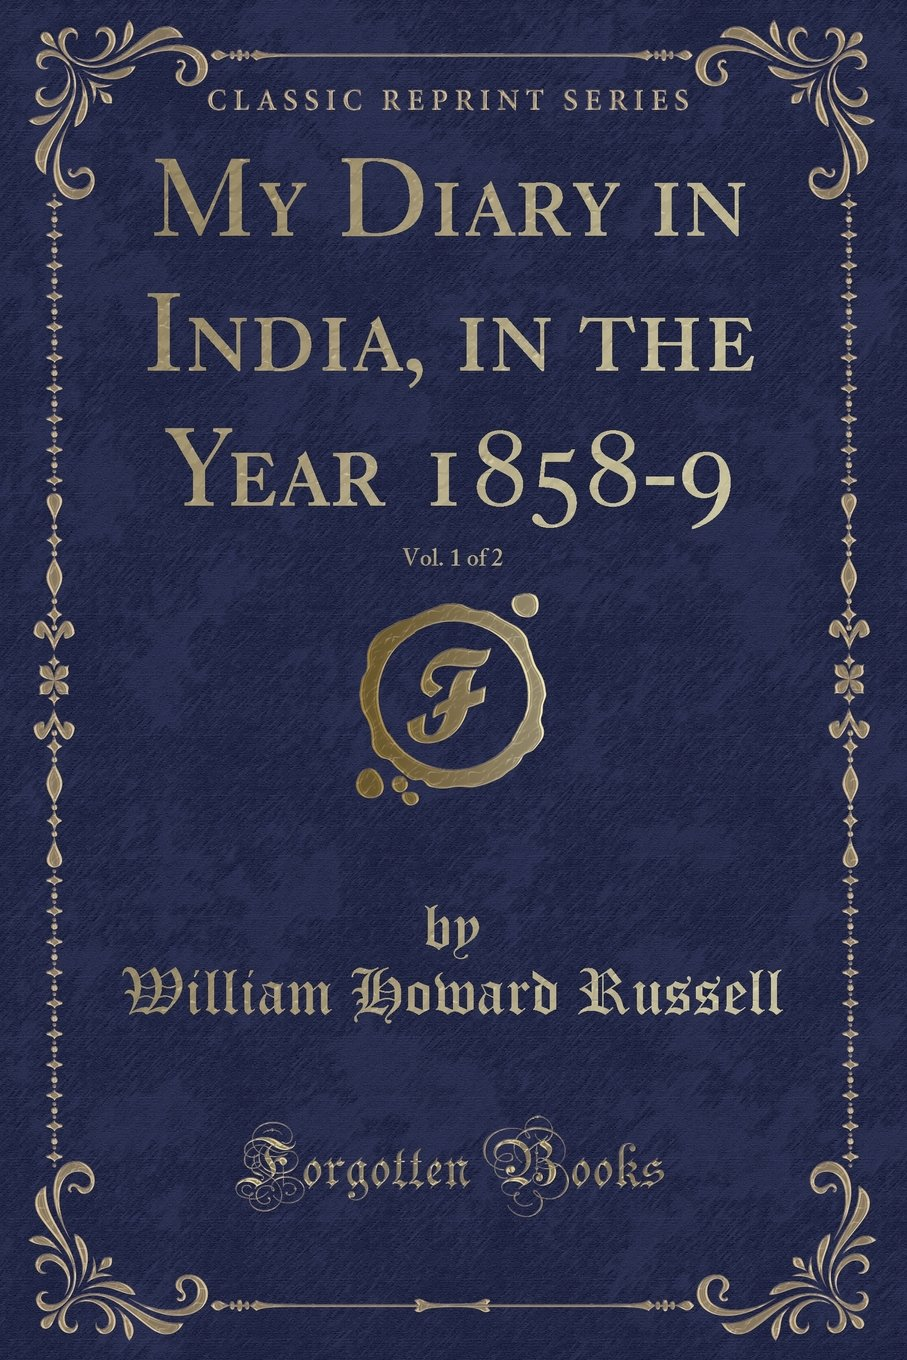 Download My Diary in India, in the Year 1858-9, Vol. 1 of 2 (Classic Reprint) ePub fb2 book